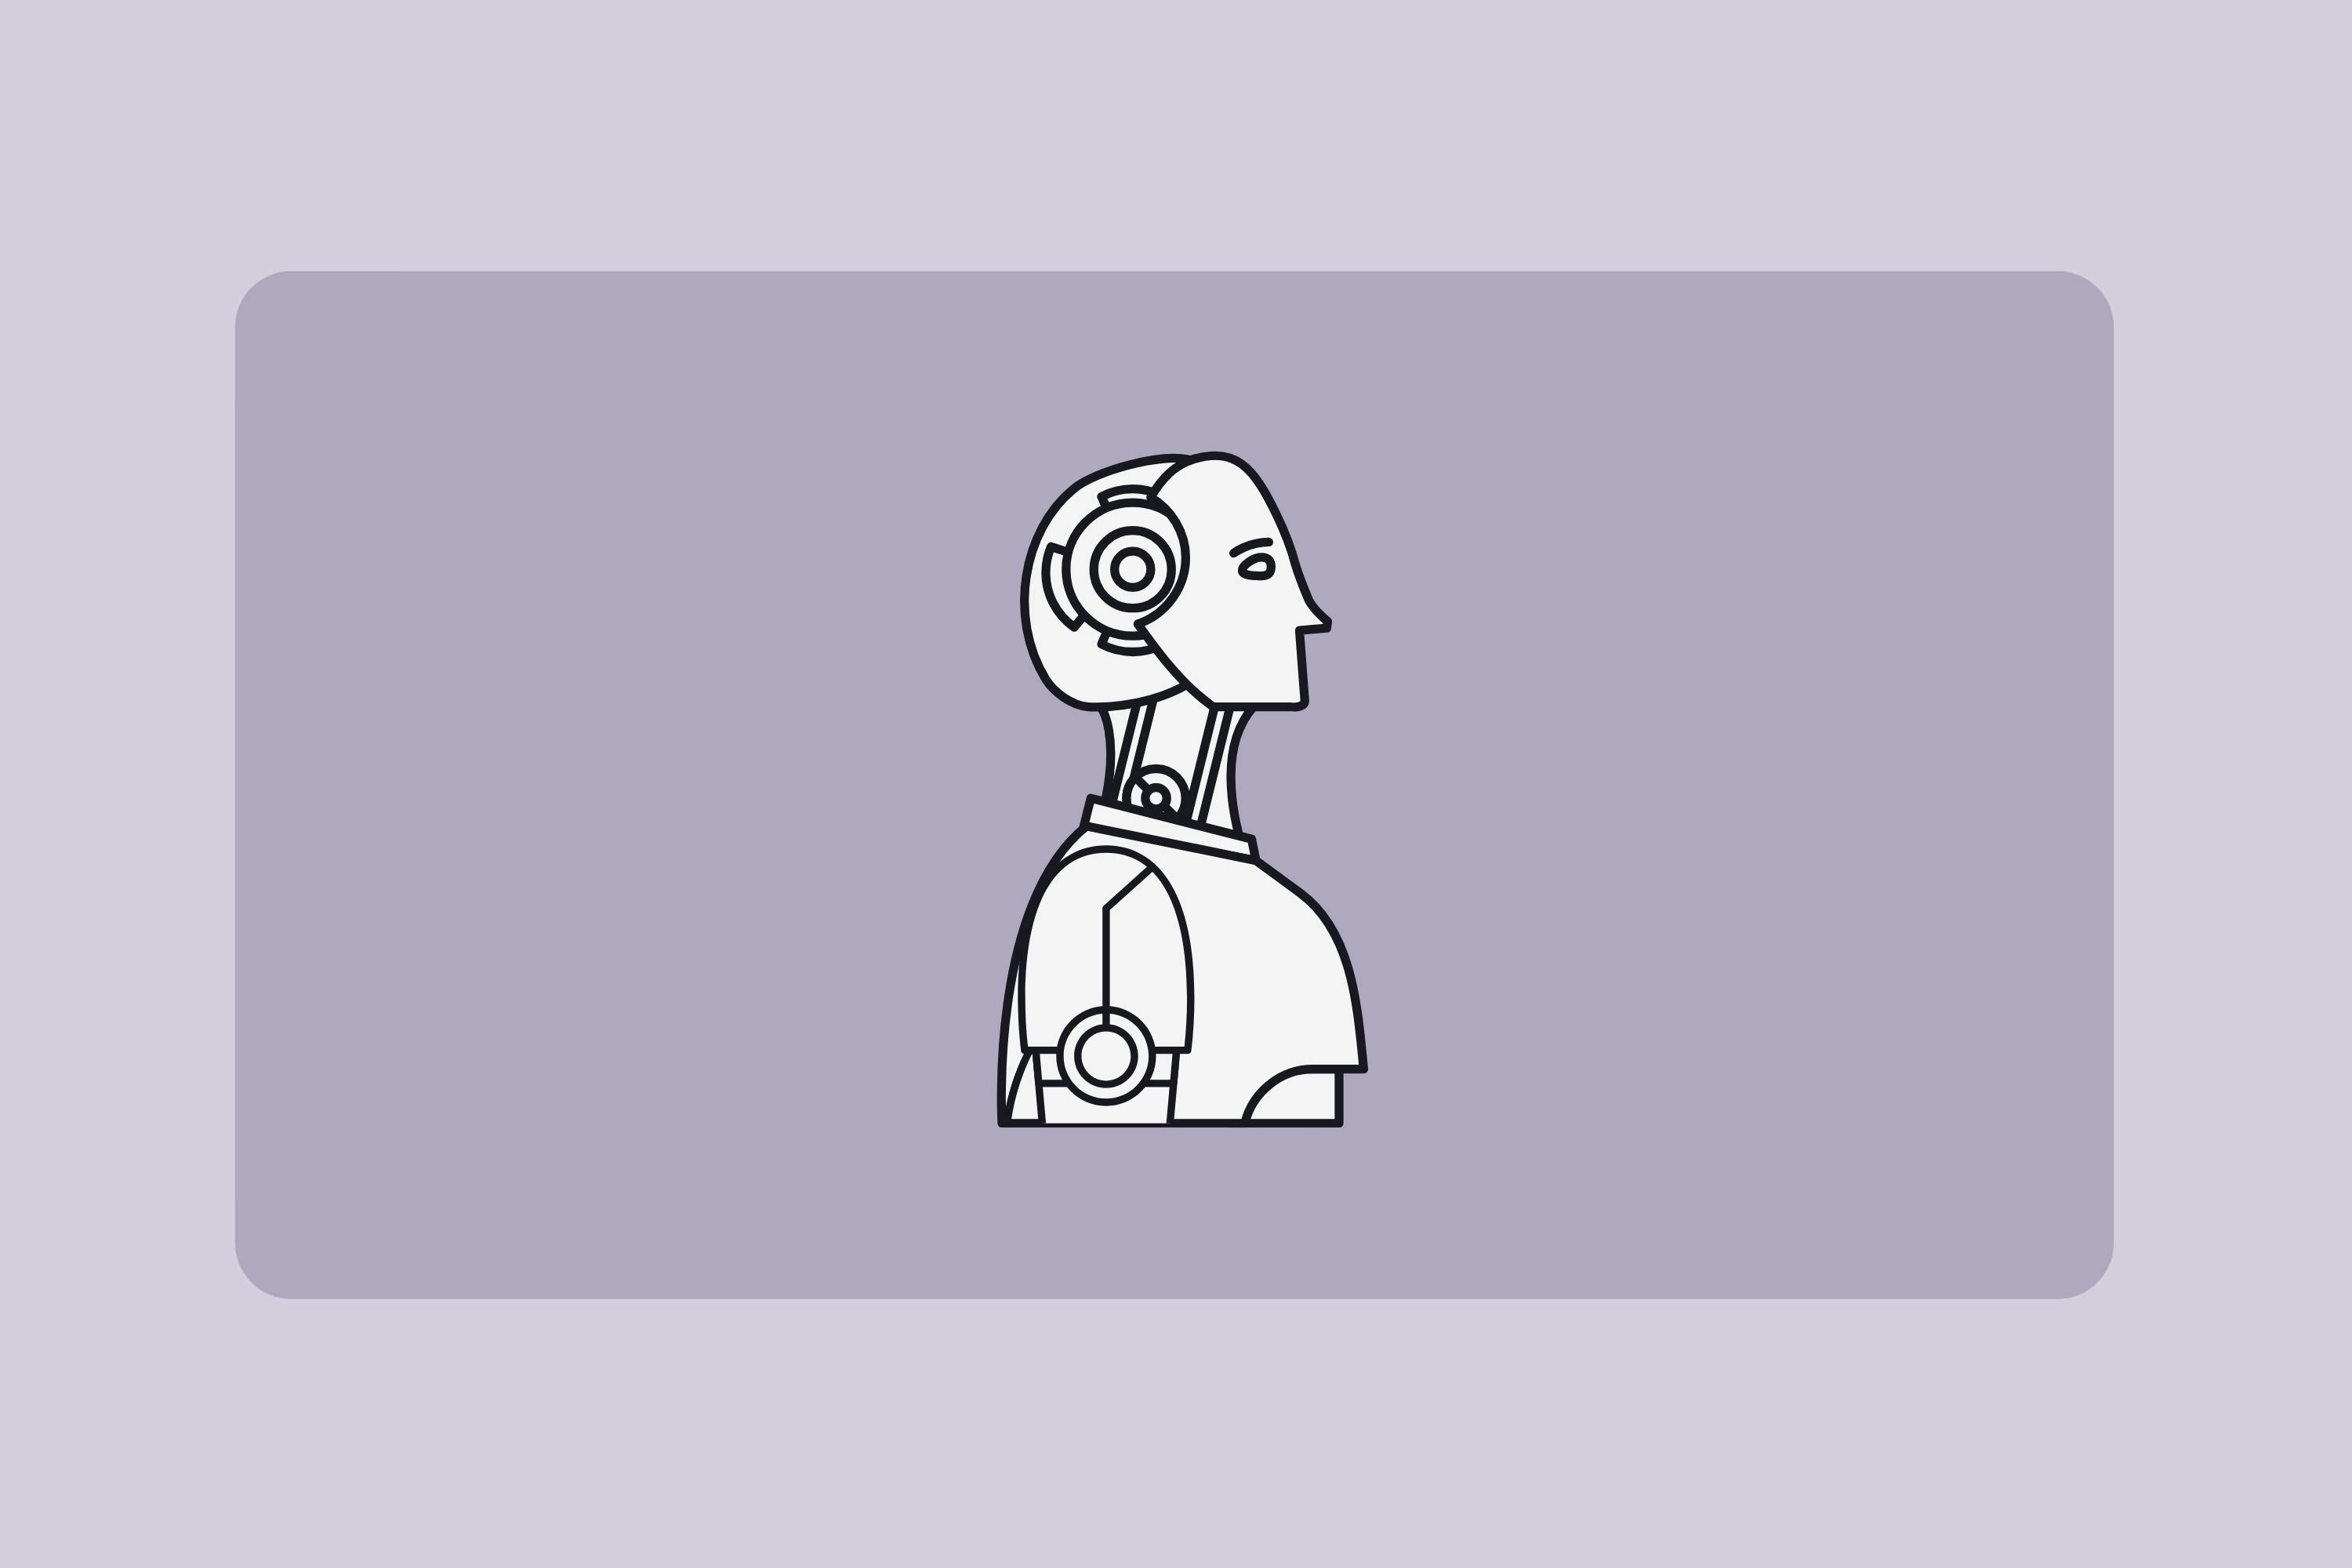 3 mistakes people make when thinking about AI